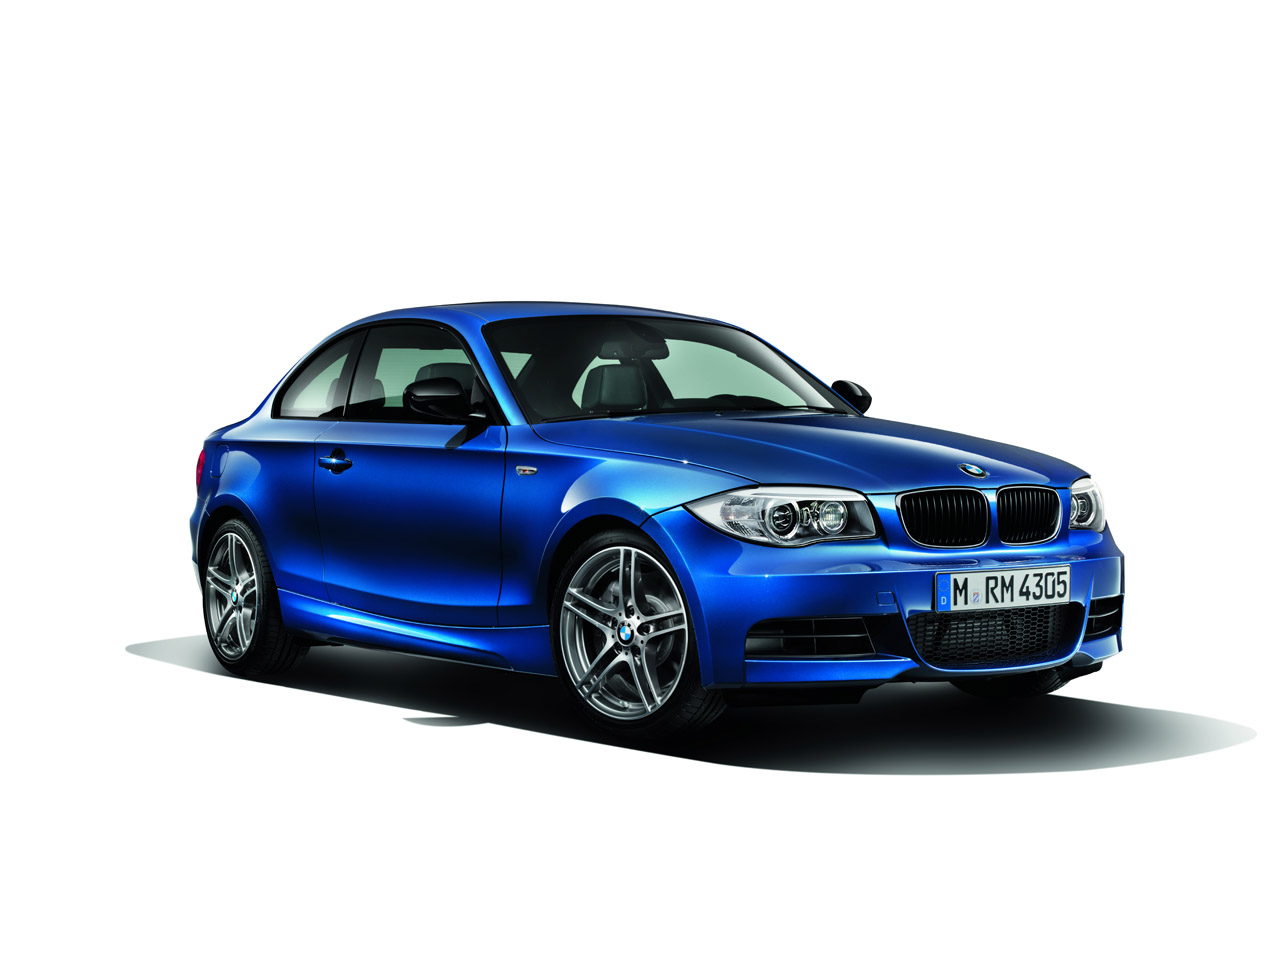 BMW 1 series 135is 2013 photo - 2